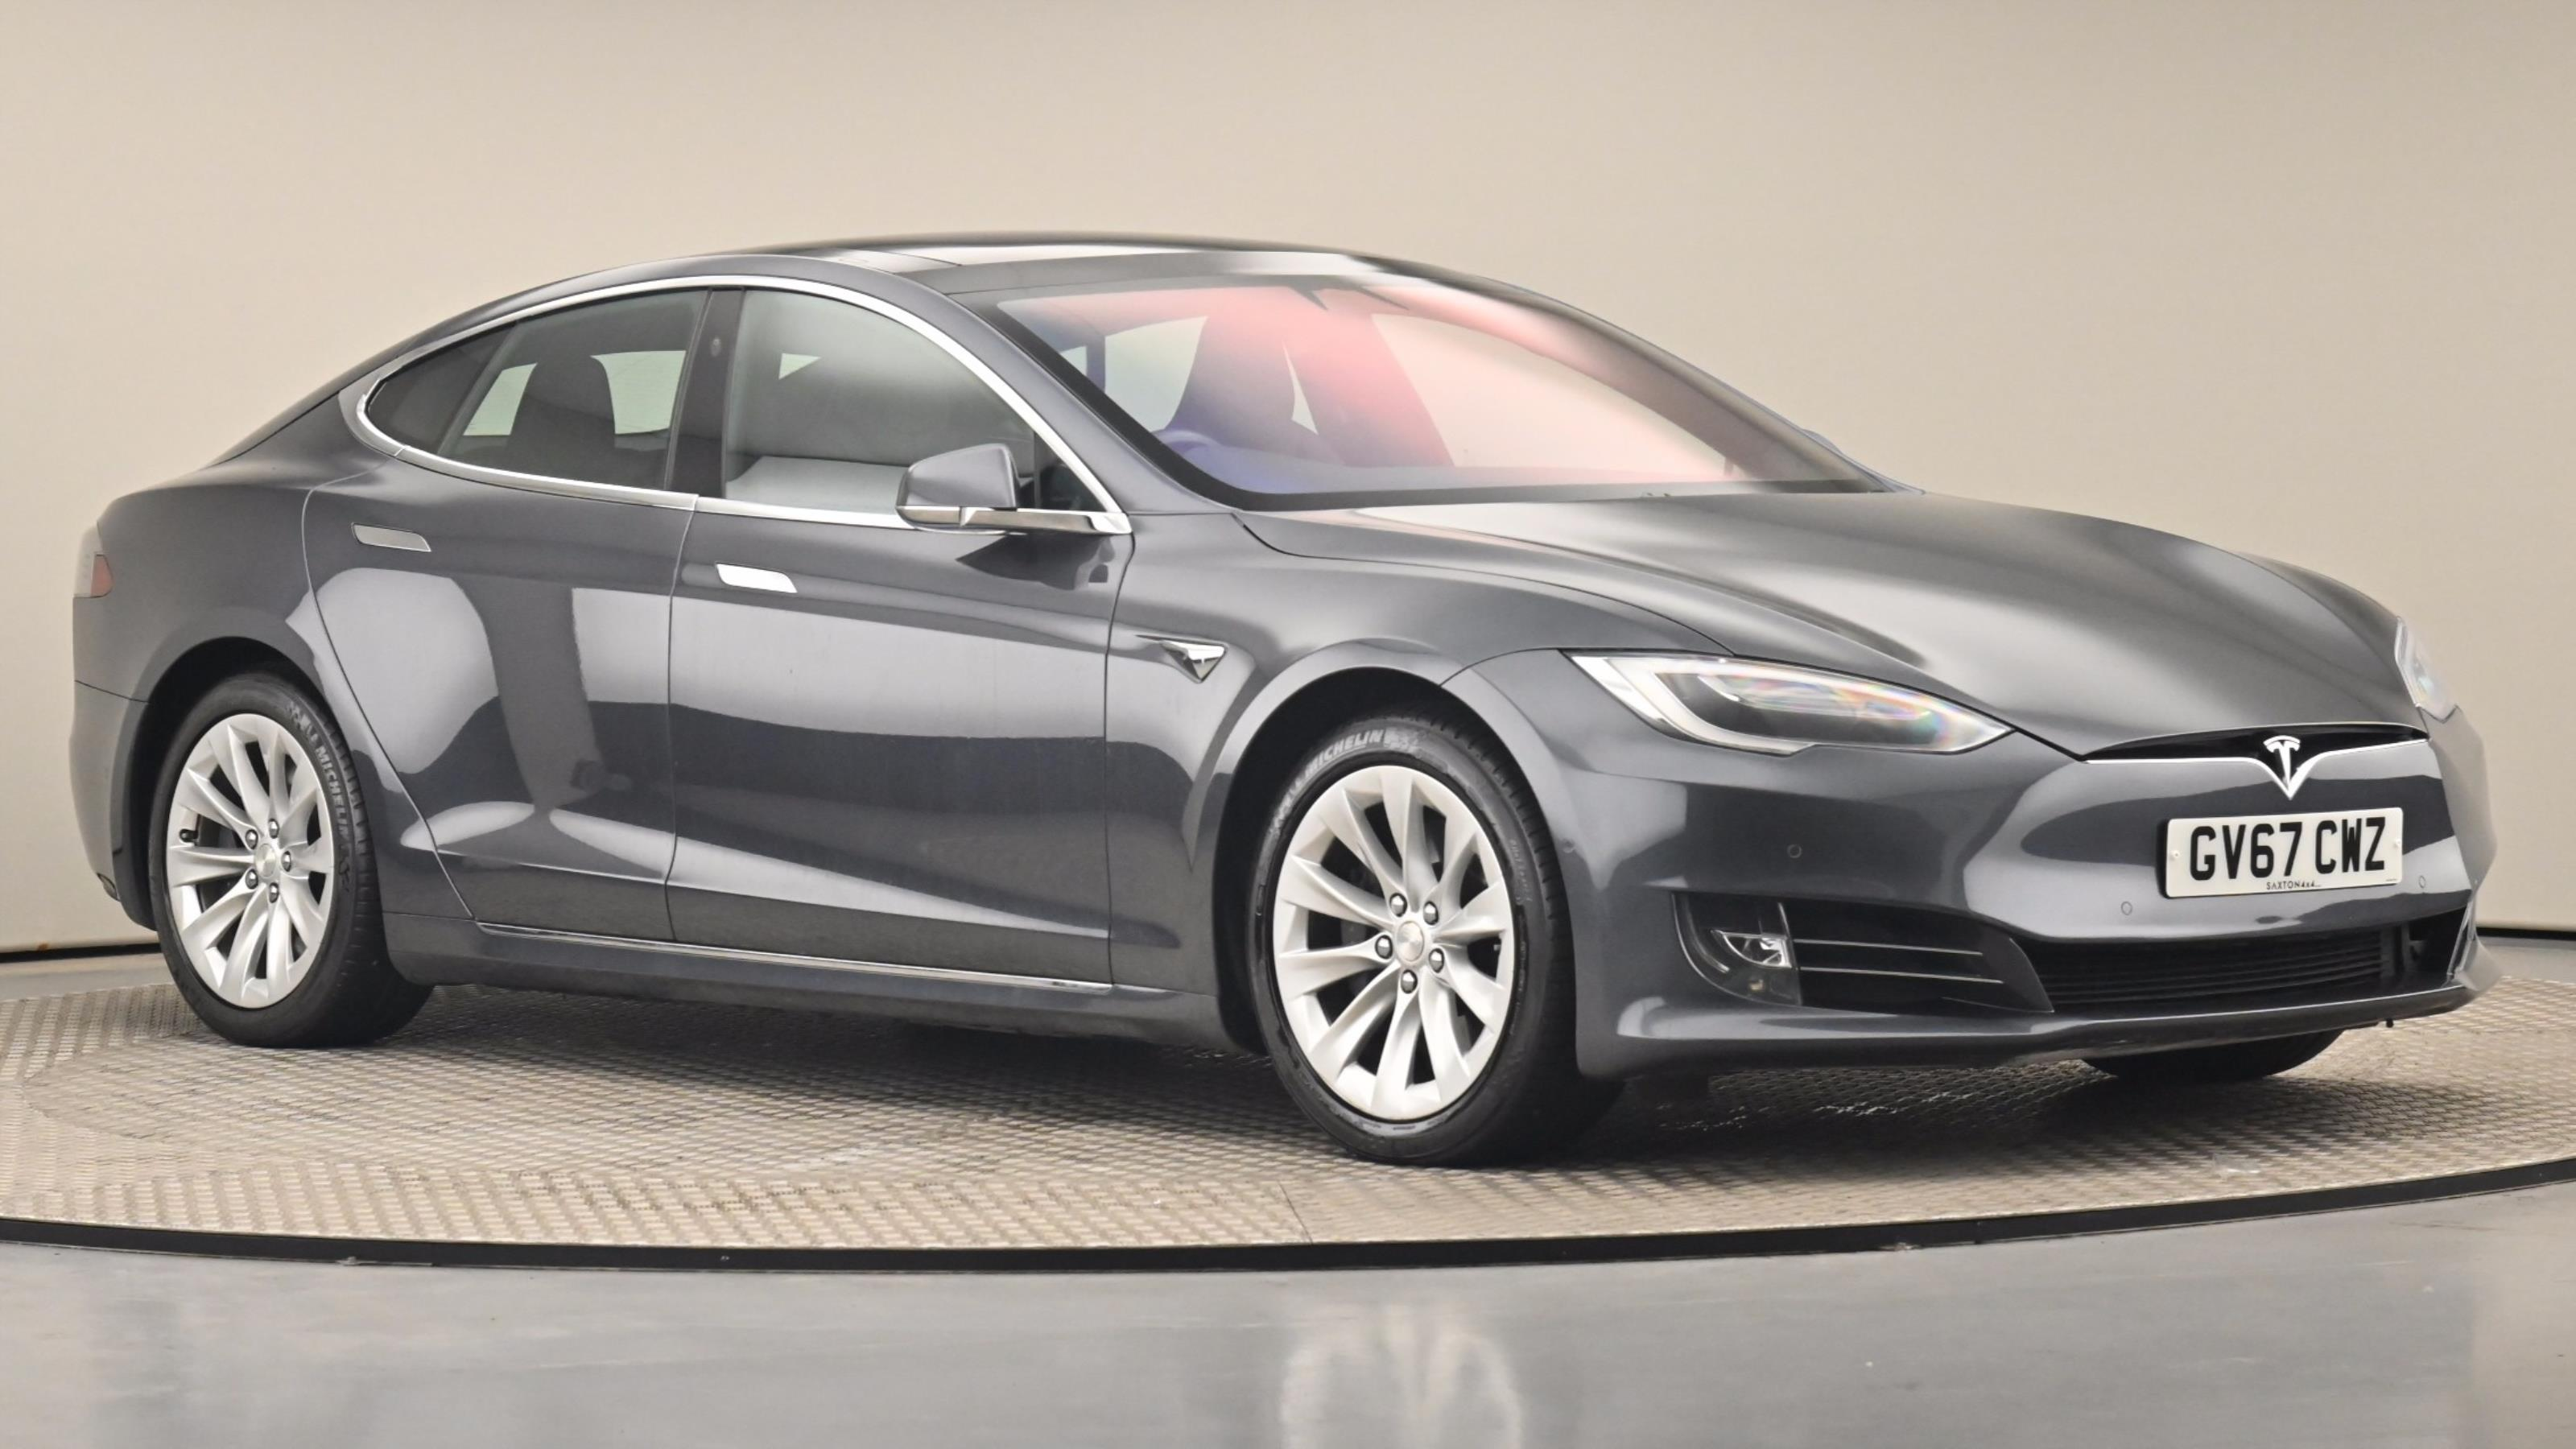 Used 2017 Tesla MODEL S 449kW 100kWh Dual Motor 5dr Auto SILVER at Saxton4x4